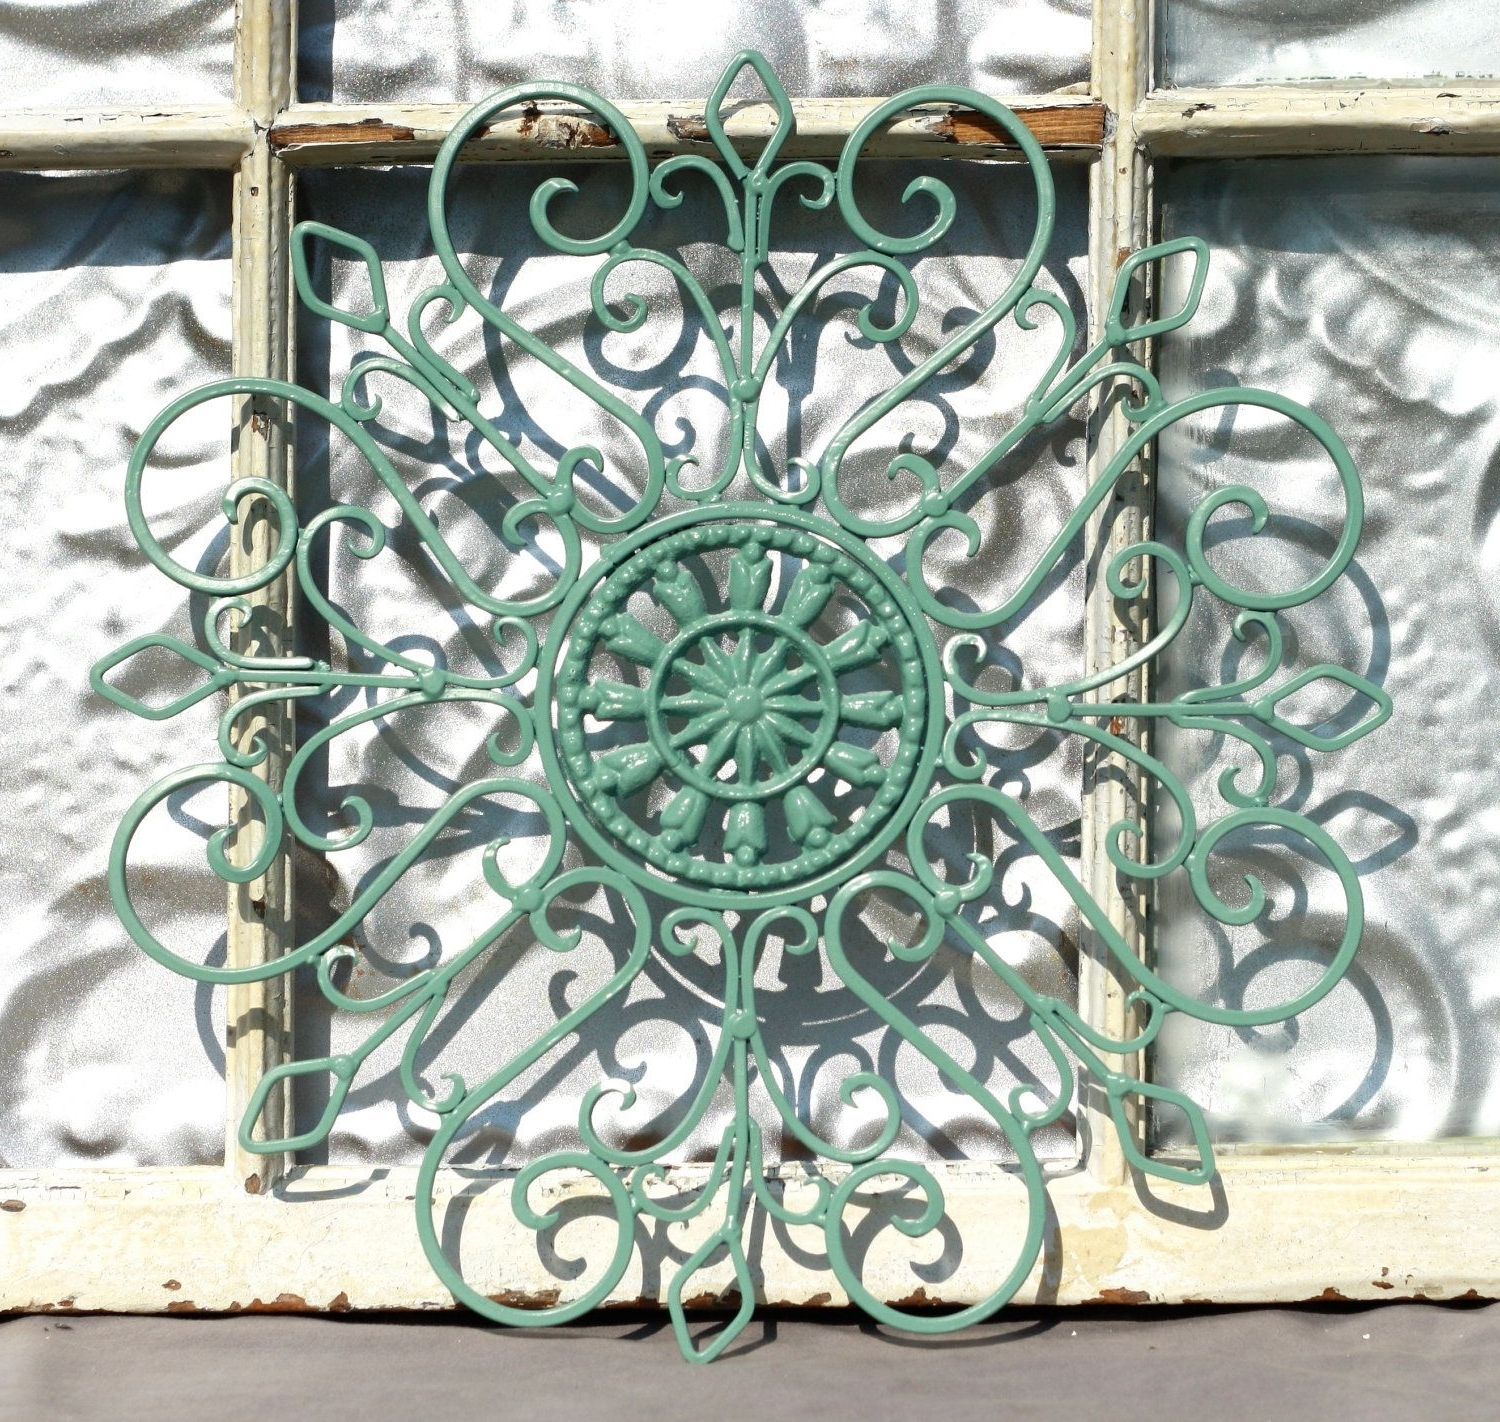 Metal Wall Art For Outdoors Regarding Well Liked Wrought Iron Wall Decor/ Metal Wall Hanging/ Indoor/ Outdoor Metal (View 4 of 15)